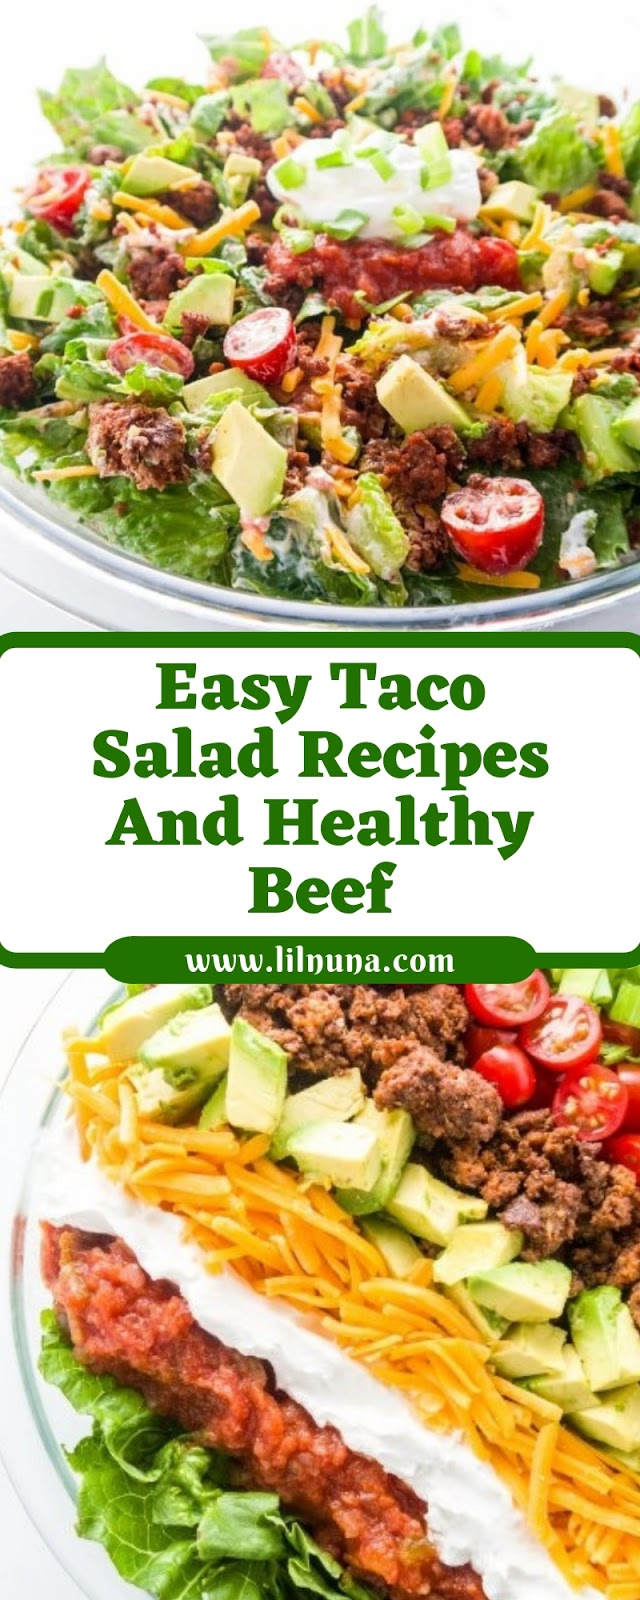 Easy Taco Salad Recipes And Healthy Beef